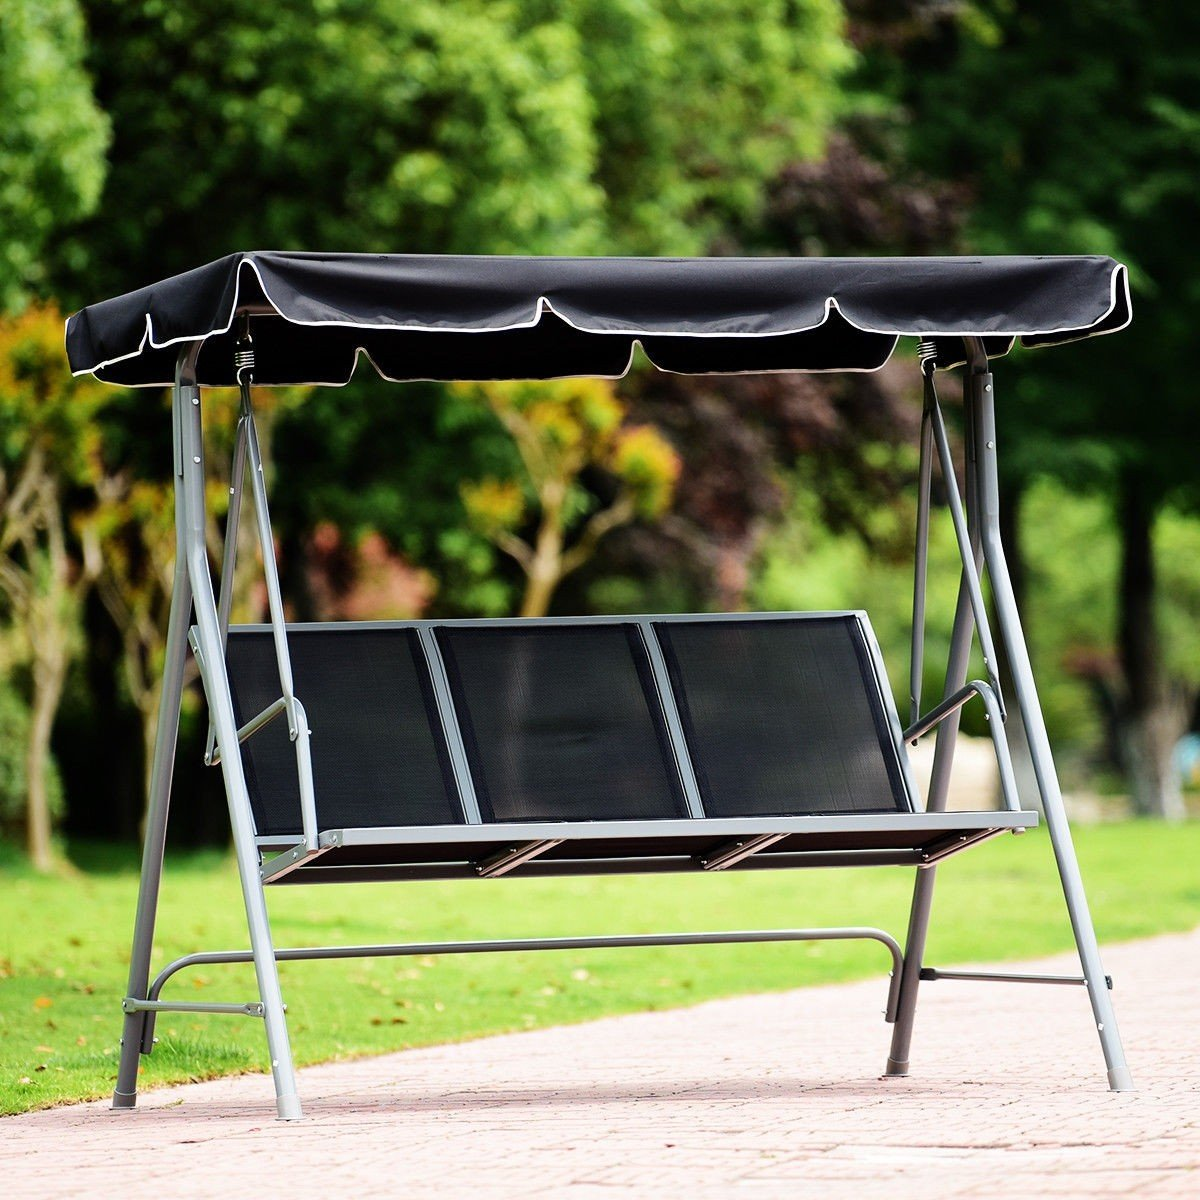 Dayanaprincess 3 Persons Patio Powder Finish Canopy Deck Swing Bench Heavy Duty Steel Construction Outside Chairs for Porch Garden Backyard Decor by Dayanaprincess (Image #4)